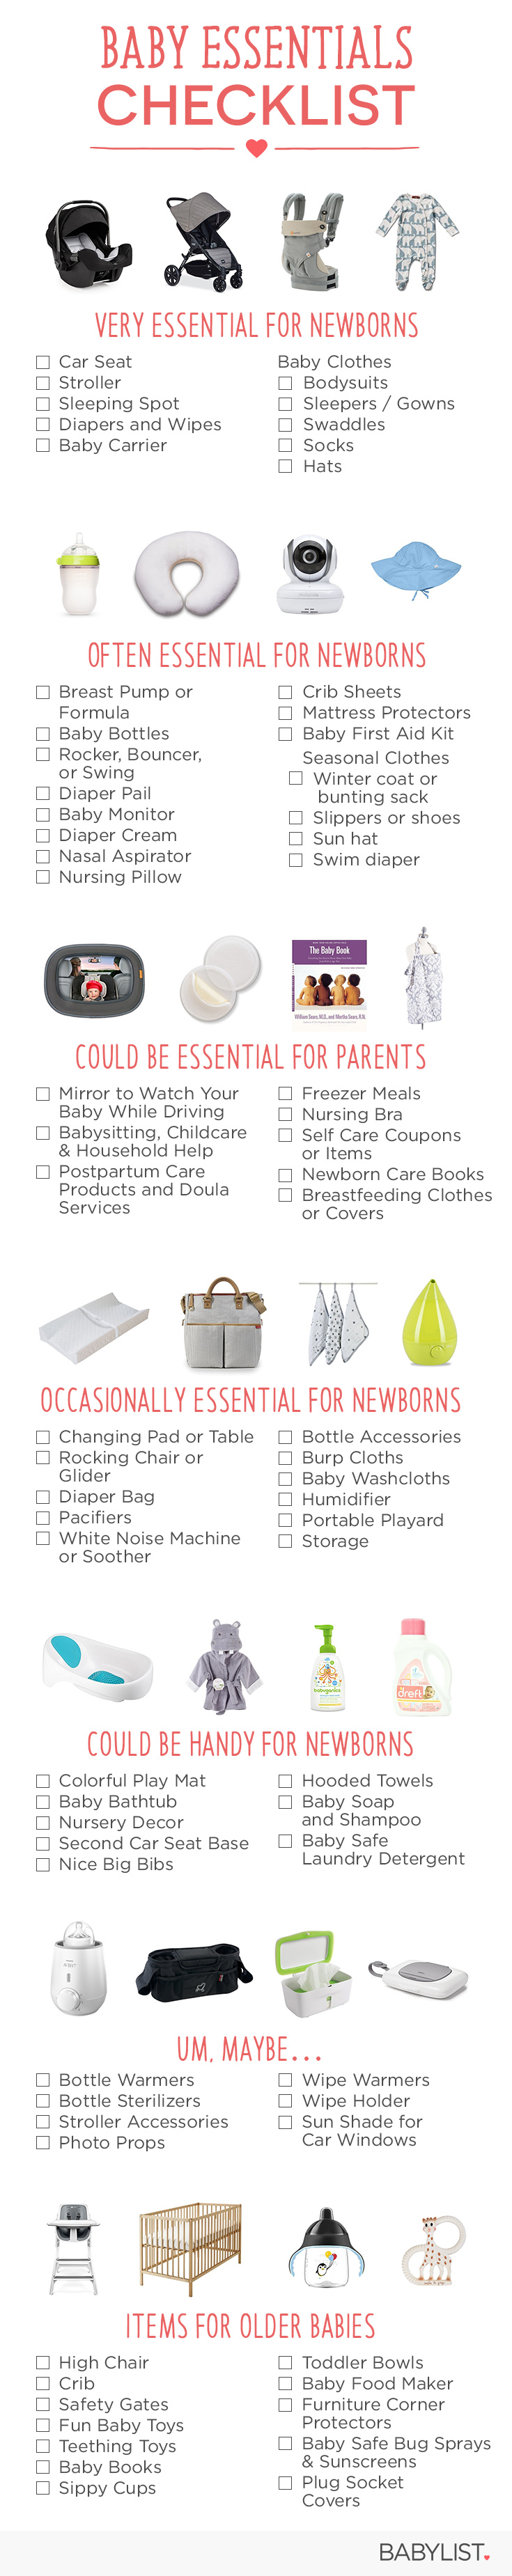 "We ranked baby essentials from ""VERY essential"" to ""Um, Maybe,"" to take the hassle out of deciding what to skip."